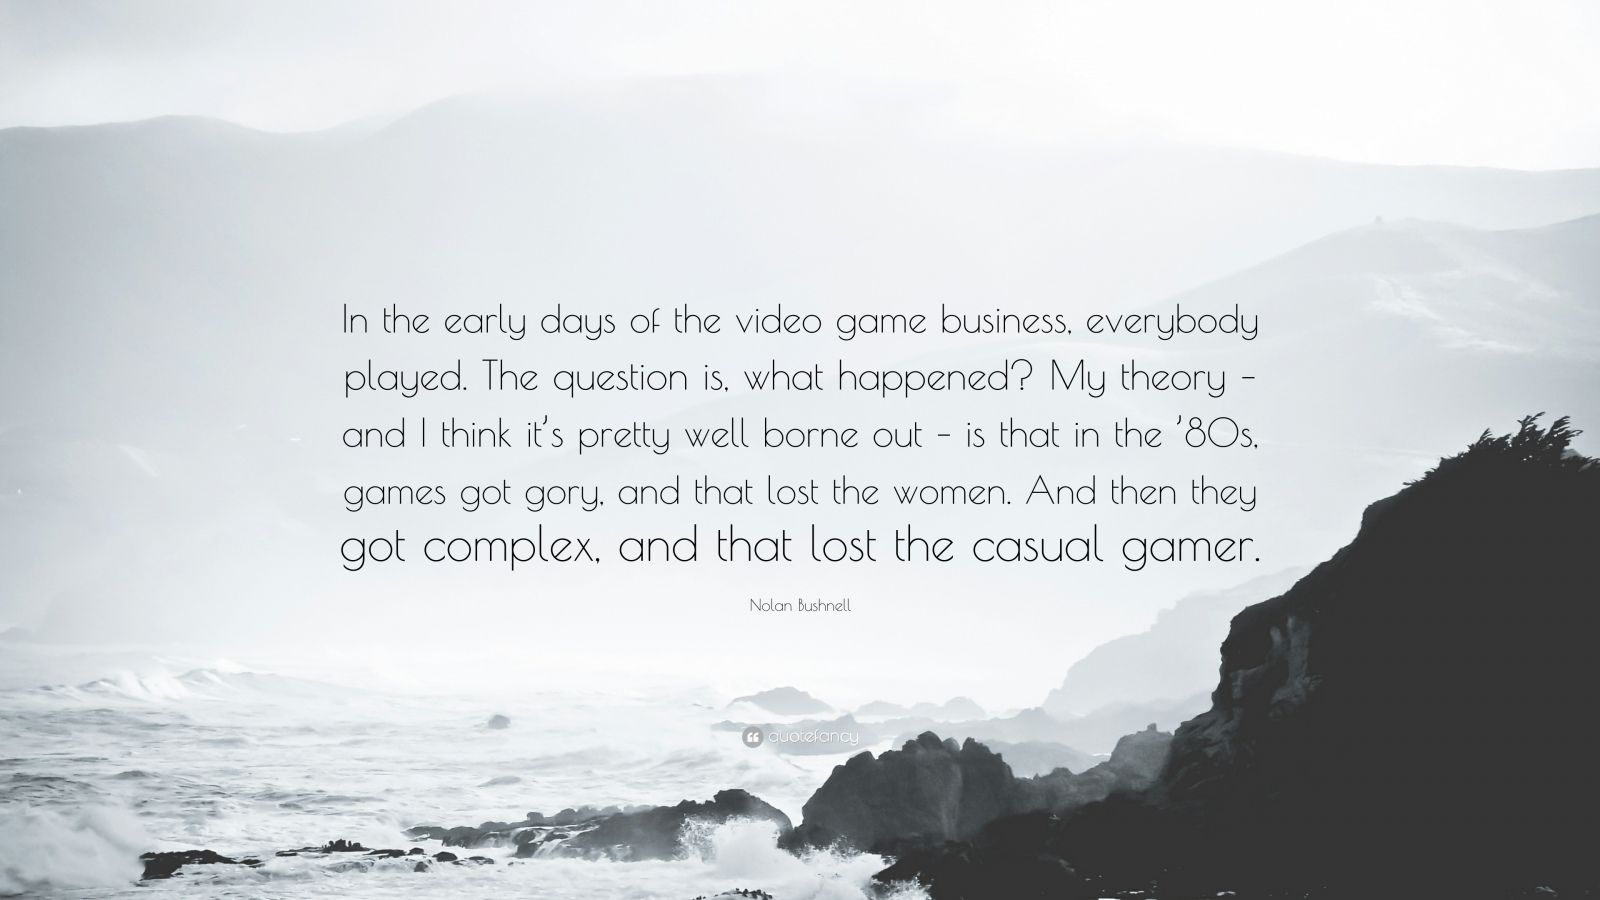 """Nolan Bushnell Quote: """"In the early days of the video game business, everybody played. The question is, what happened? My theory – and I think it's pretty well borne out – is that in the '80s, games got gory, and that lost the women. And then they got complex, and that lost the casual gamer."""""""